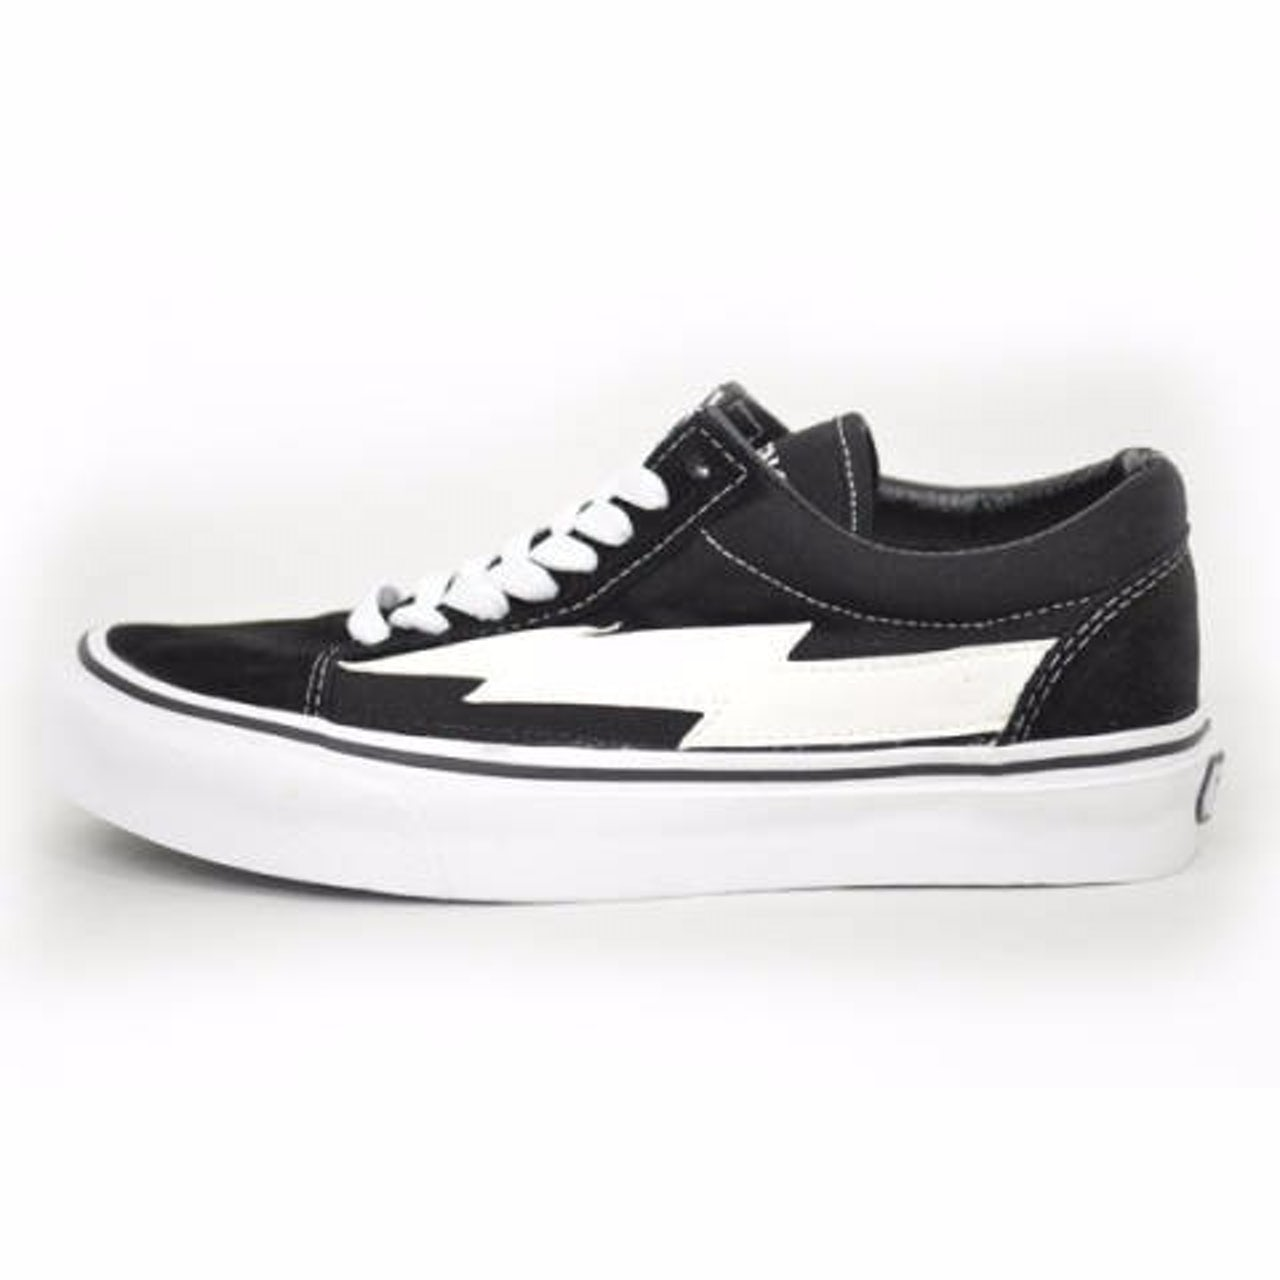 587b2a8bed9 Vans. Product photo of the Revenge X Storm sneaker